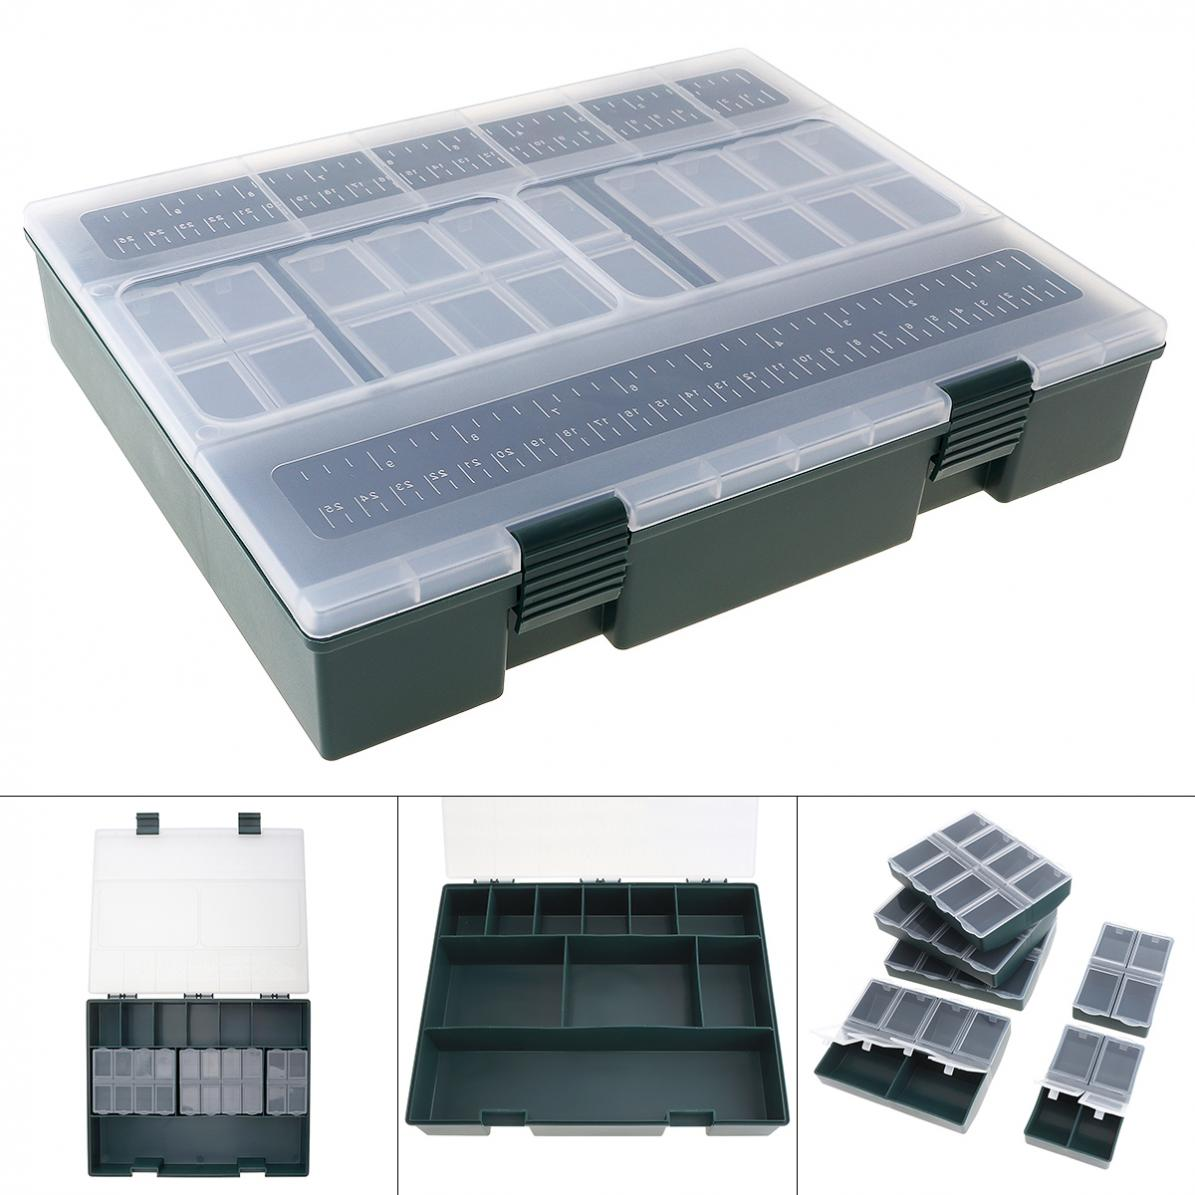 Large Capacity Carp Fishing Tackle Box With Ruler Built- In 6 Separate Small Boxes Ideal For Athletics Leisure Carp Fishing(China)